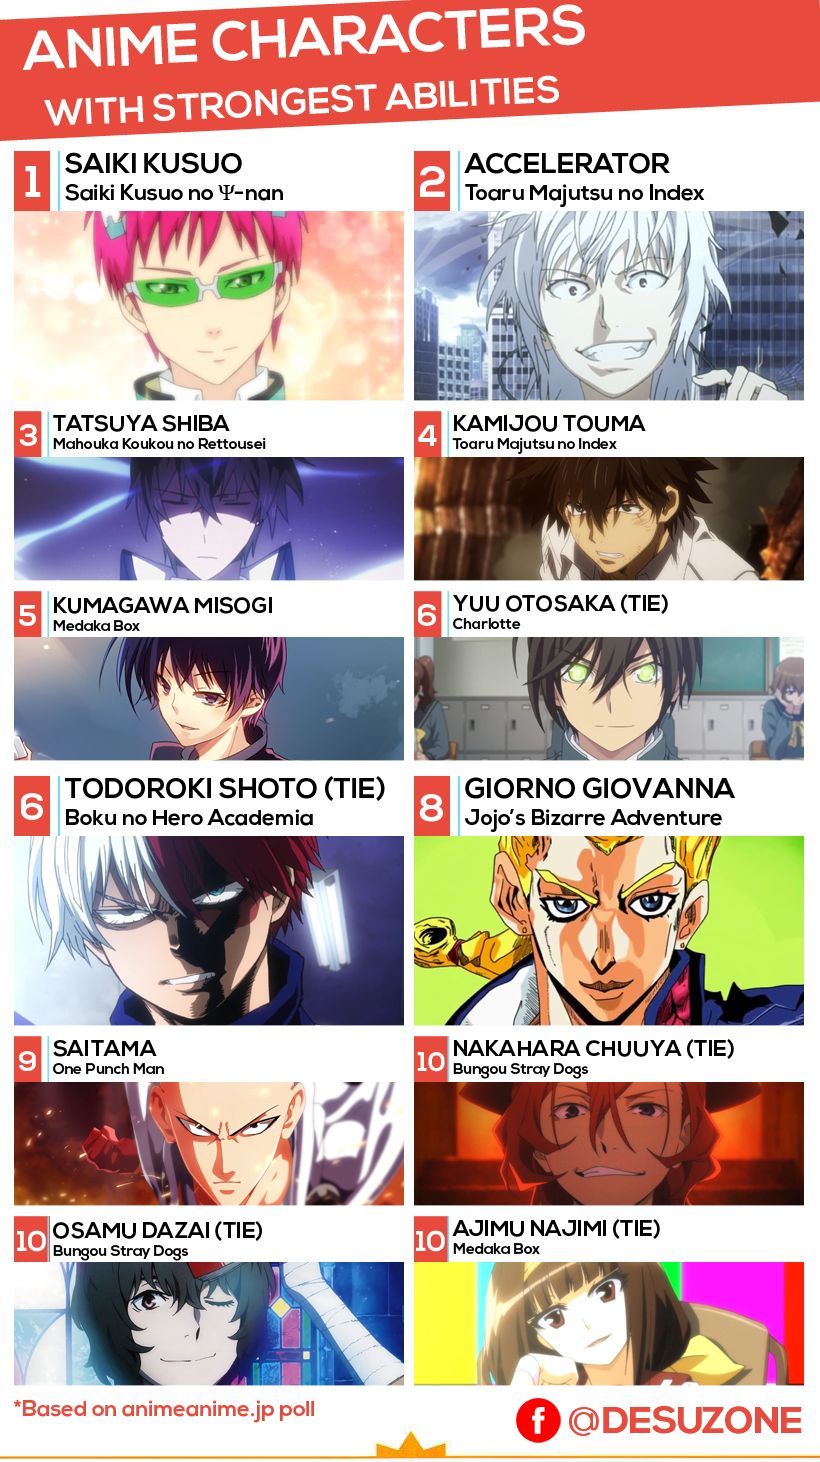 Anime Characters with Strongest Abilities